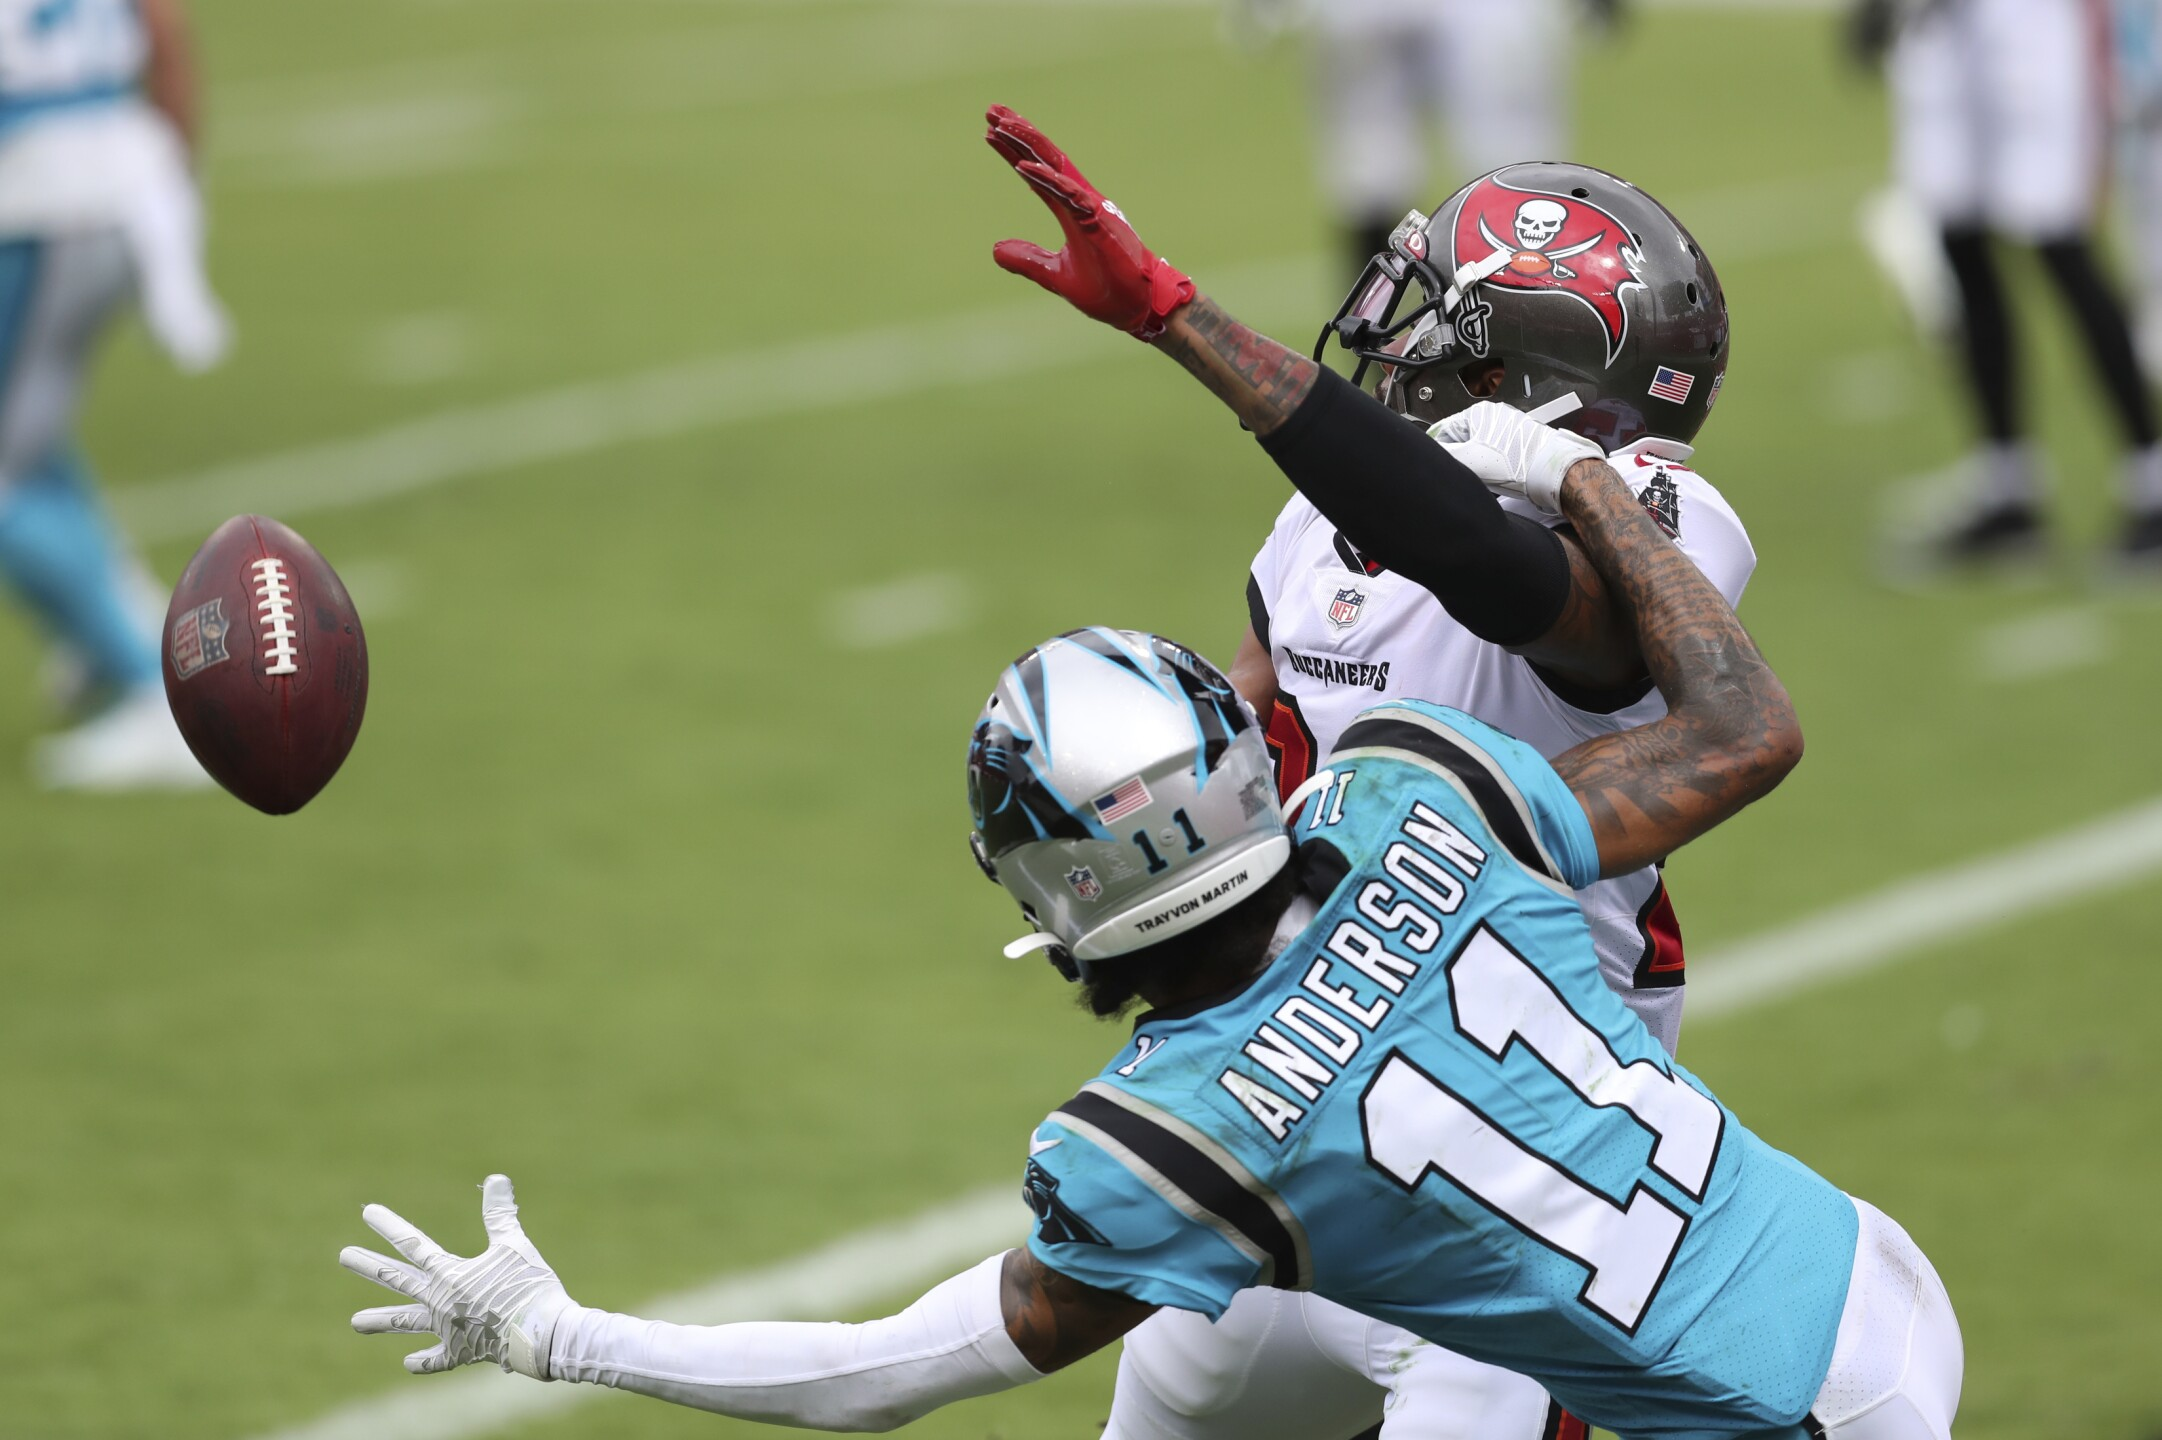 ap-images-buccaneers-panthers-game-sept-20-2020-8